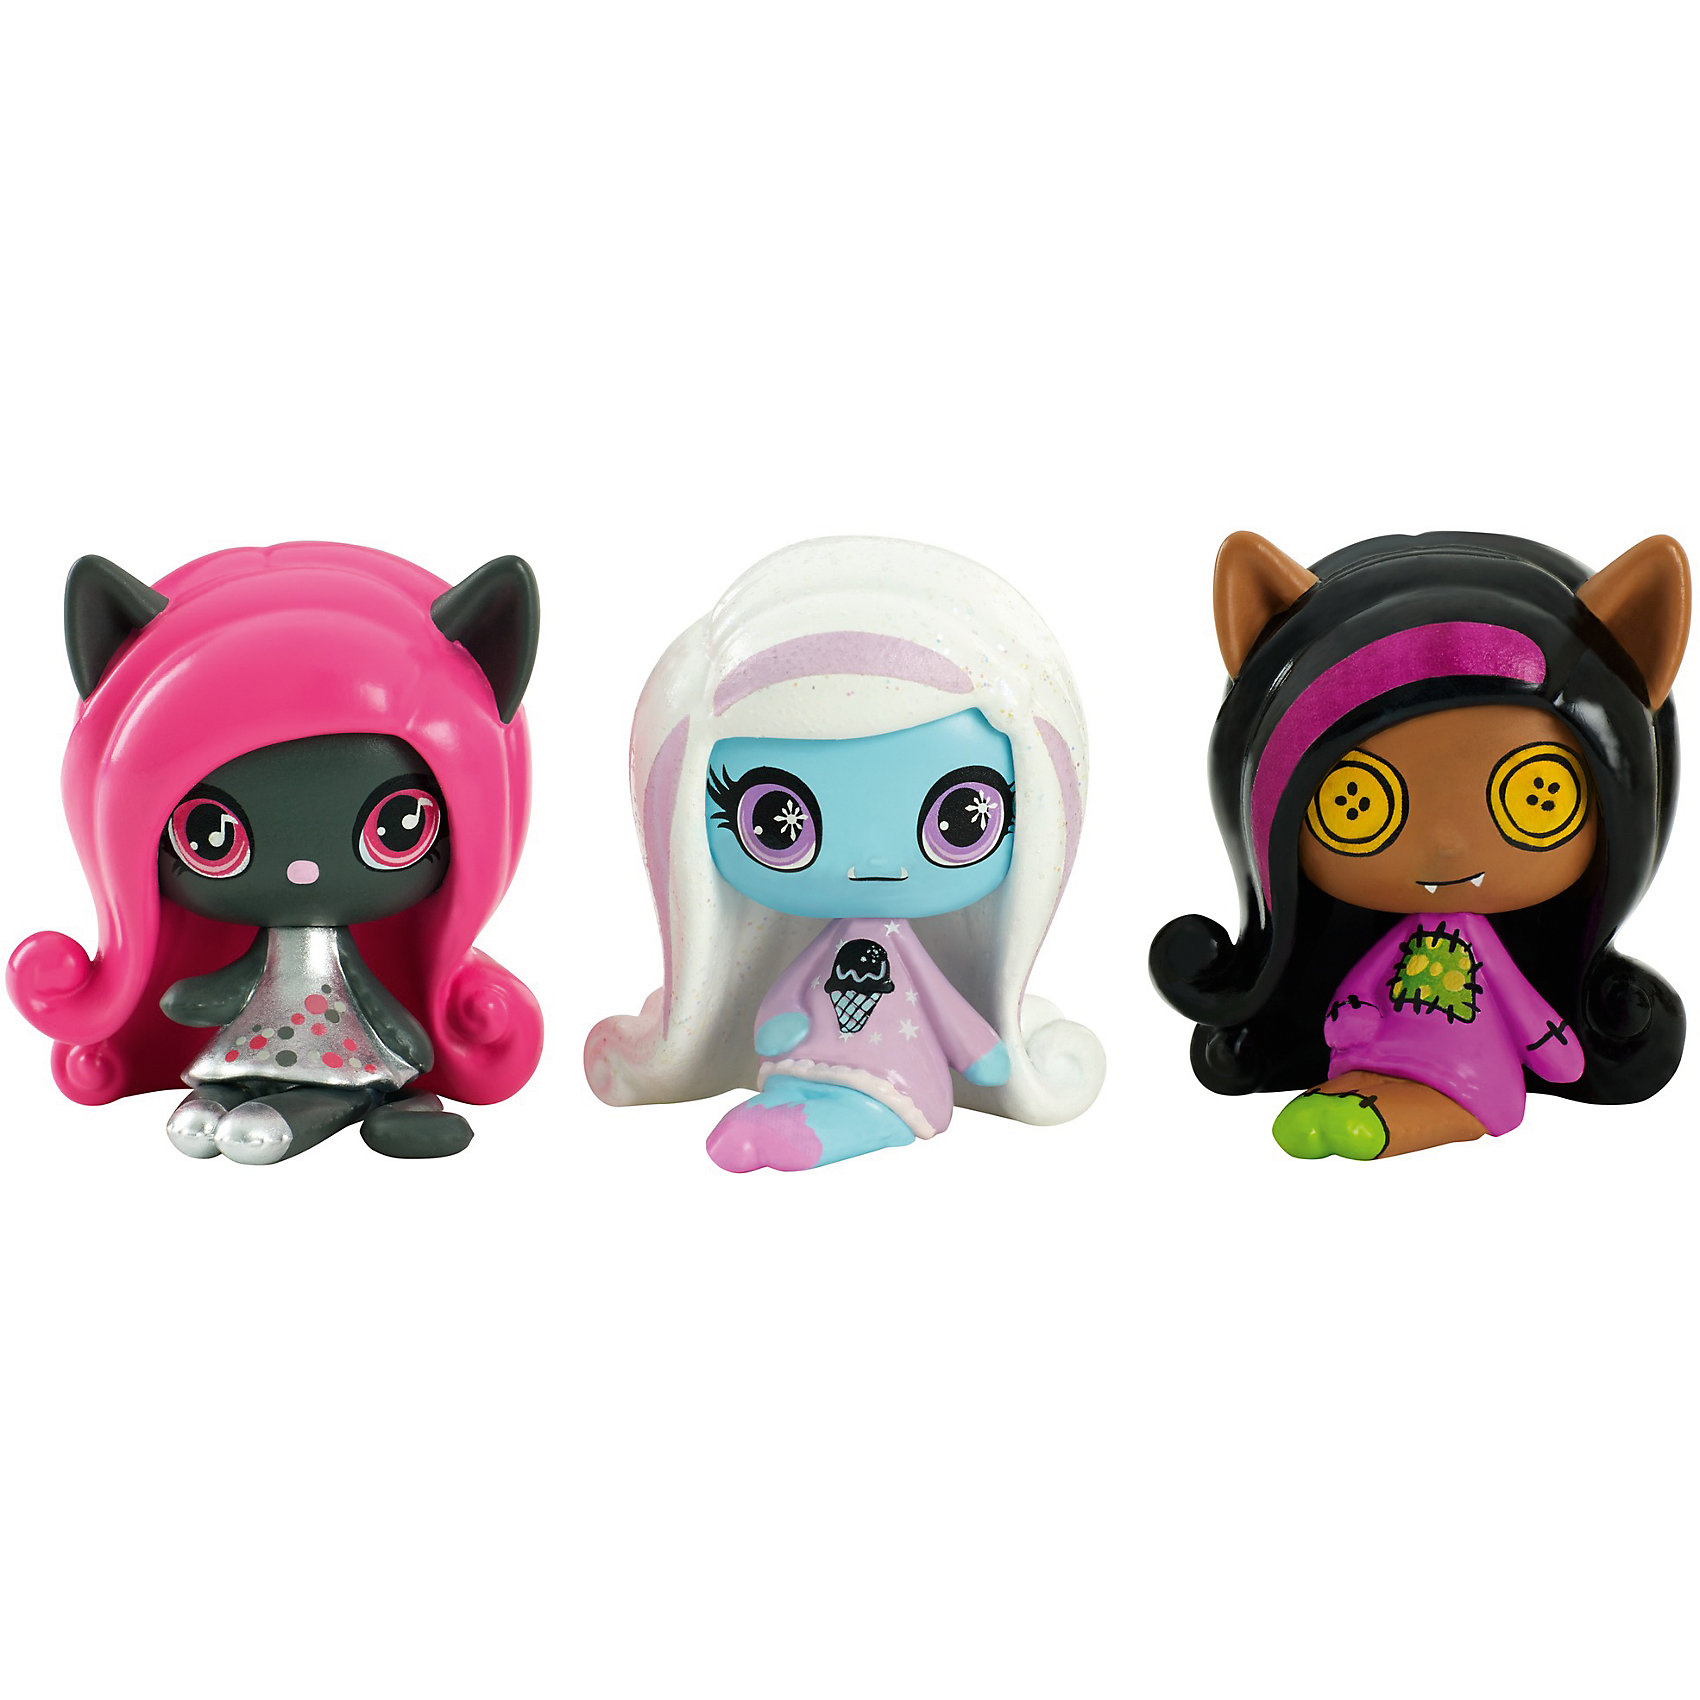 3 Мини фигурки, Monster High